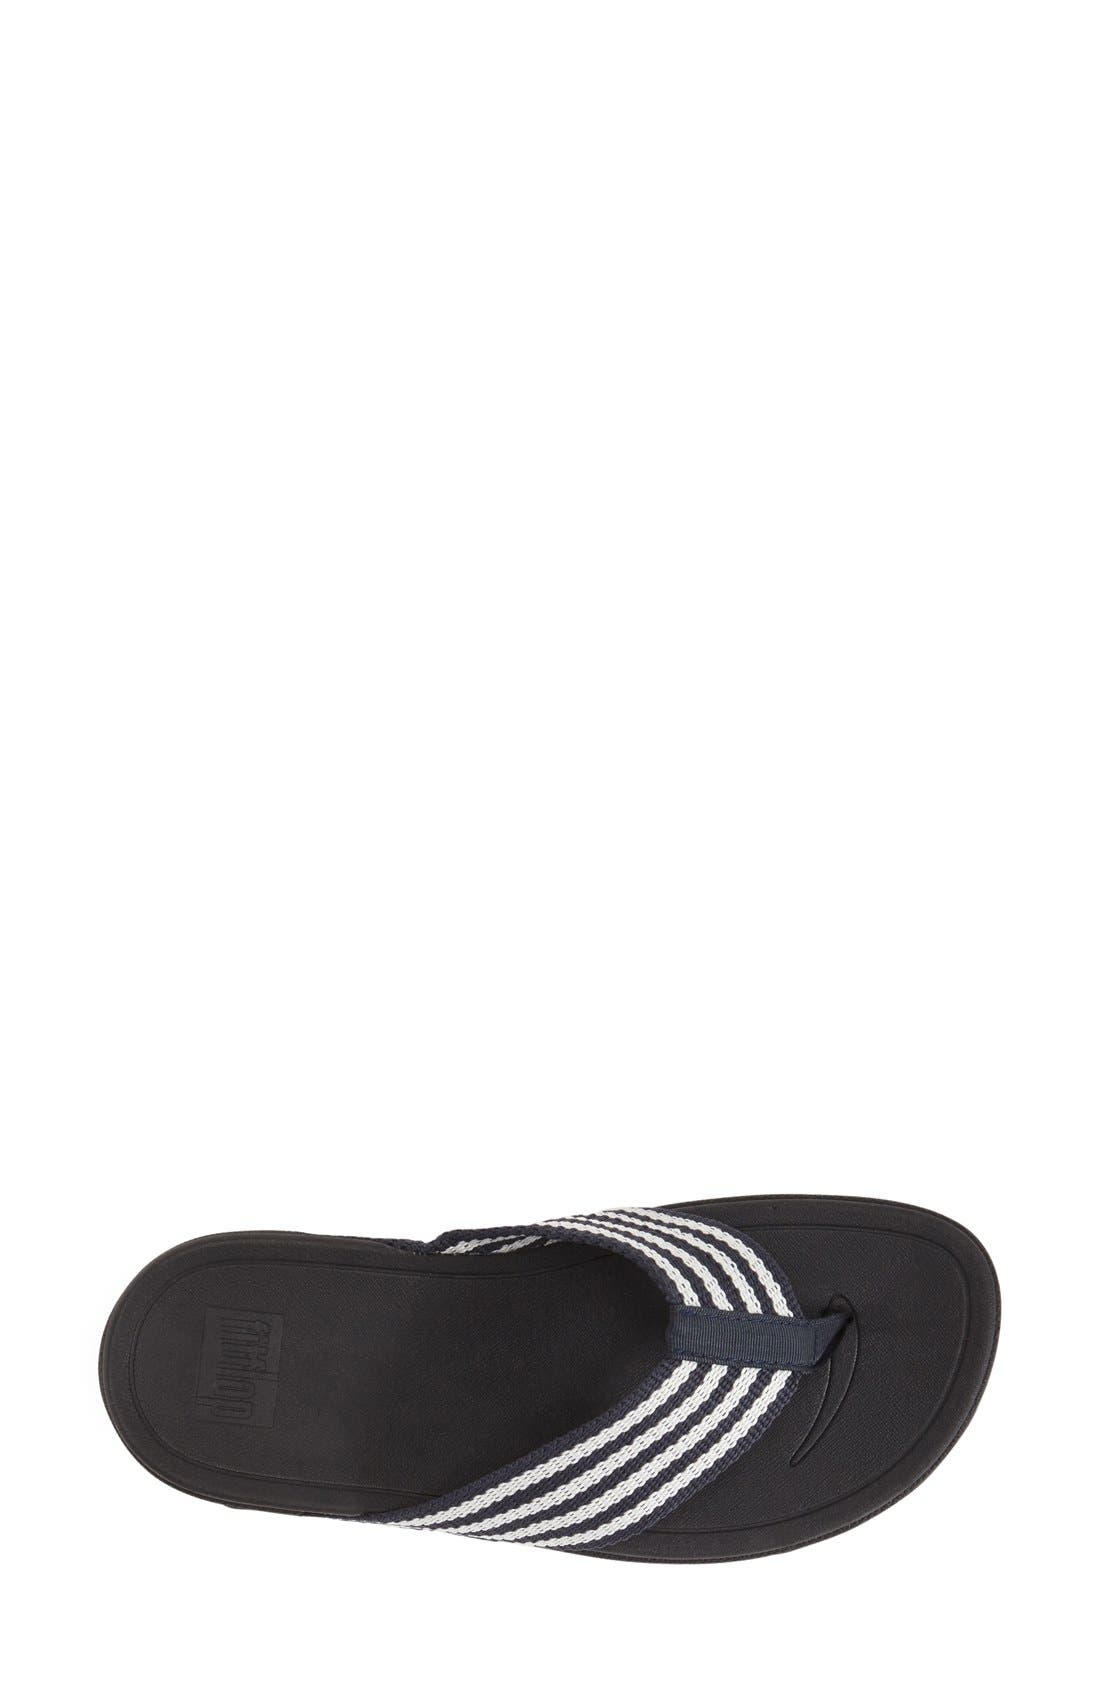 'Surfa' Thong Sandal,                             Alternate thumbnail 23, color,